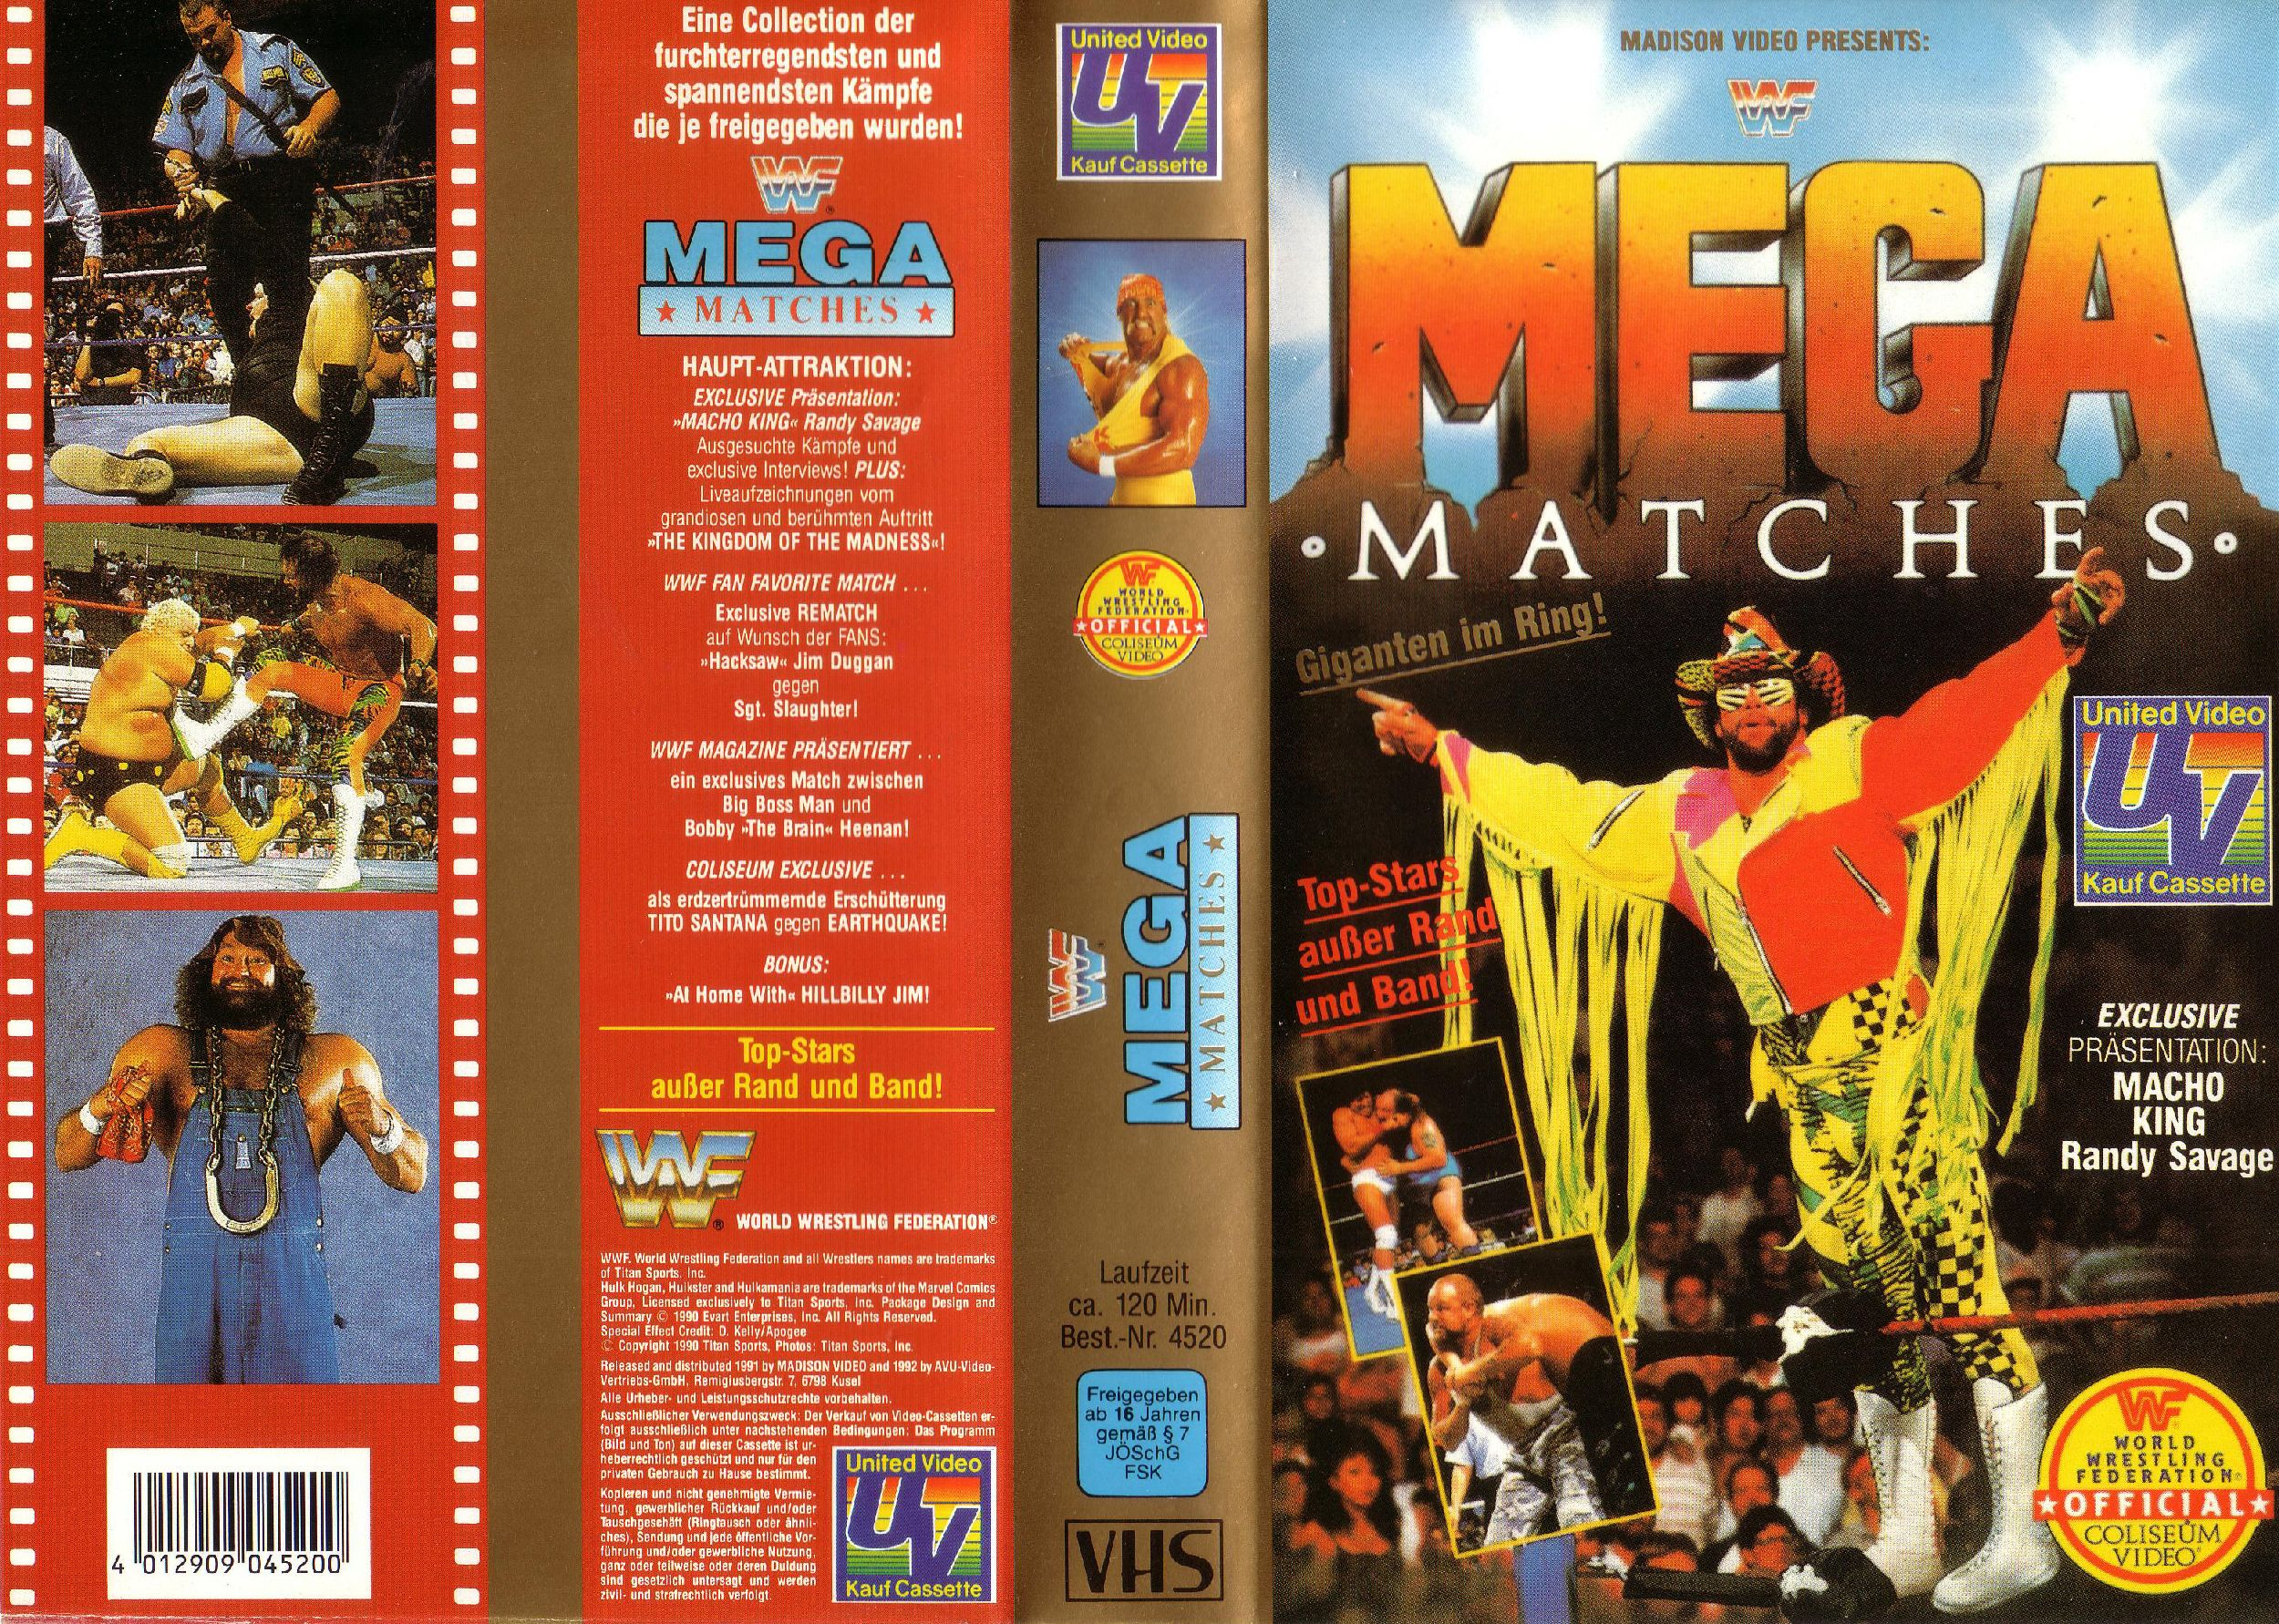 WWF_Mega_Matches_-_Cover